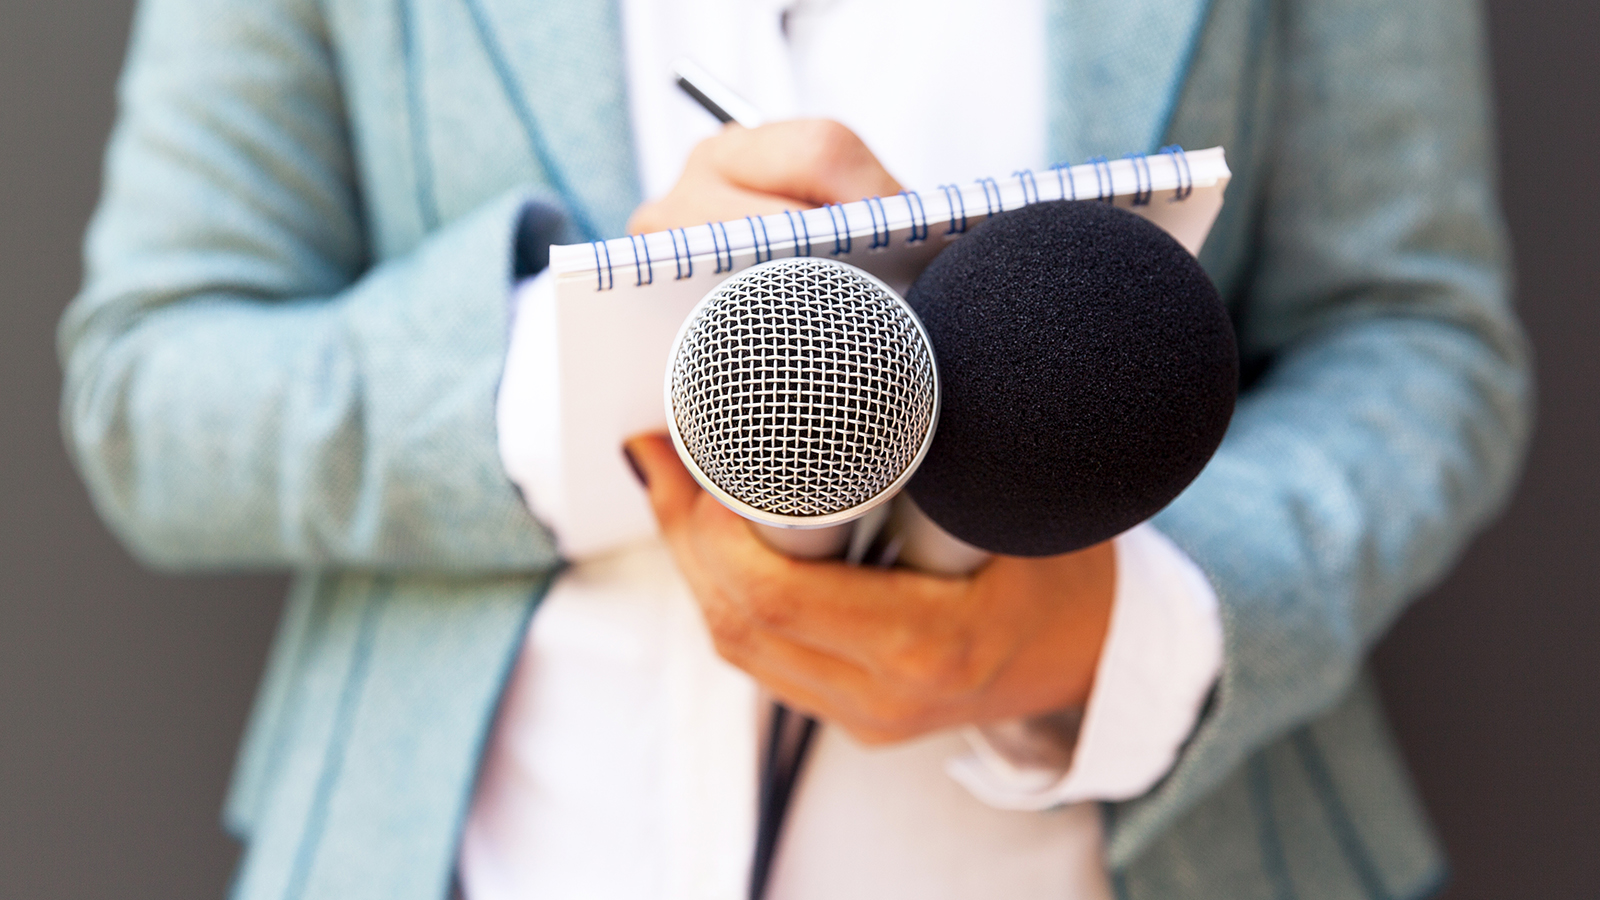 Woman reporter holding a notebook and microphones